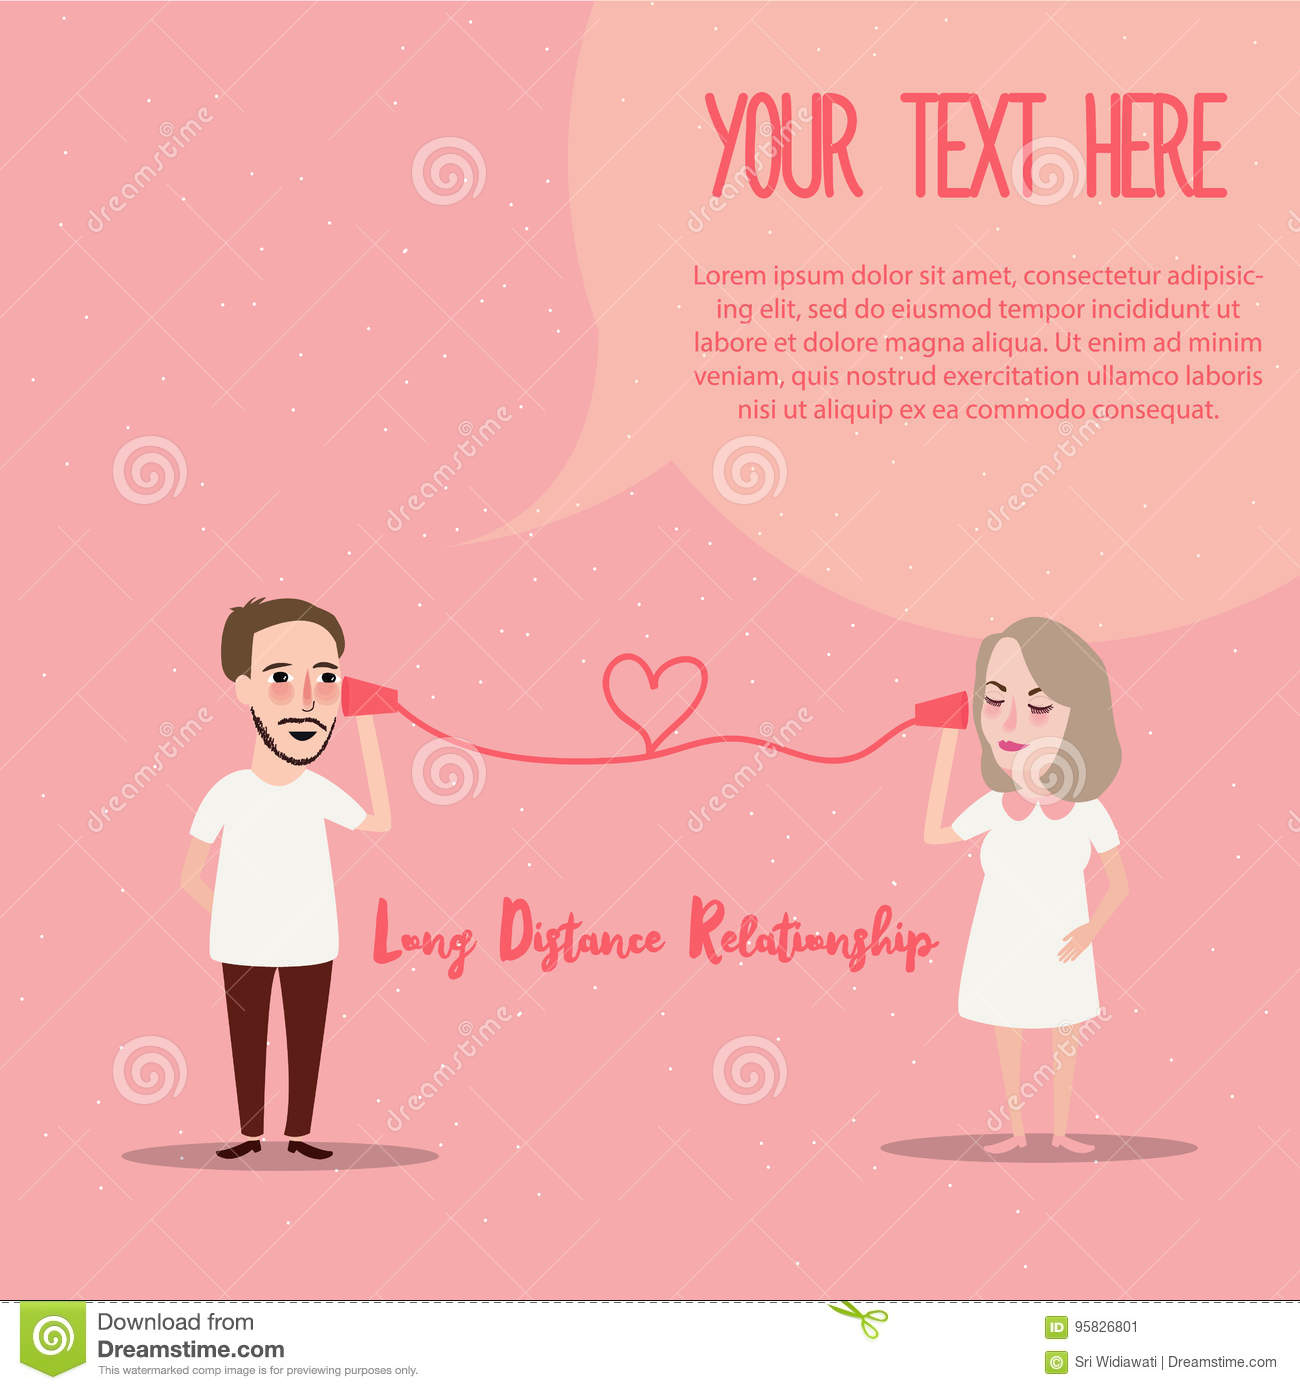 images long distance relationship dummies